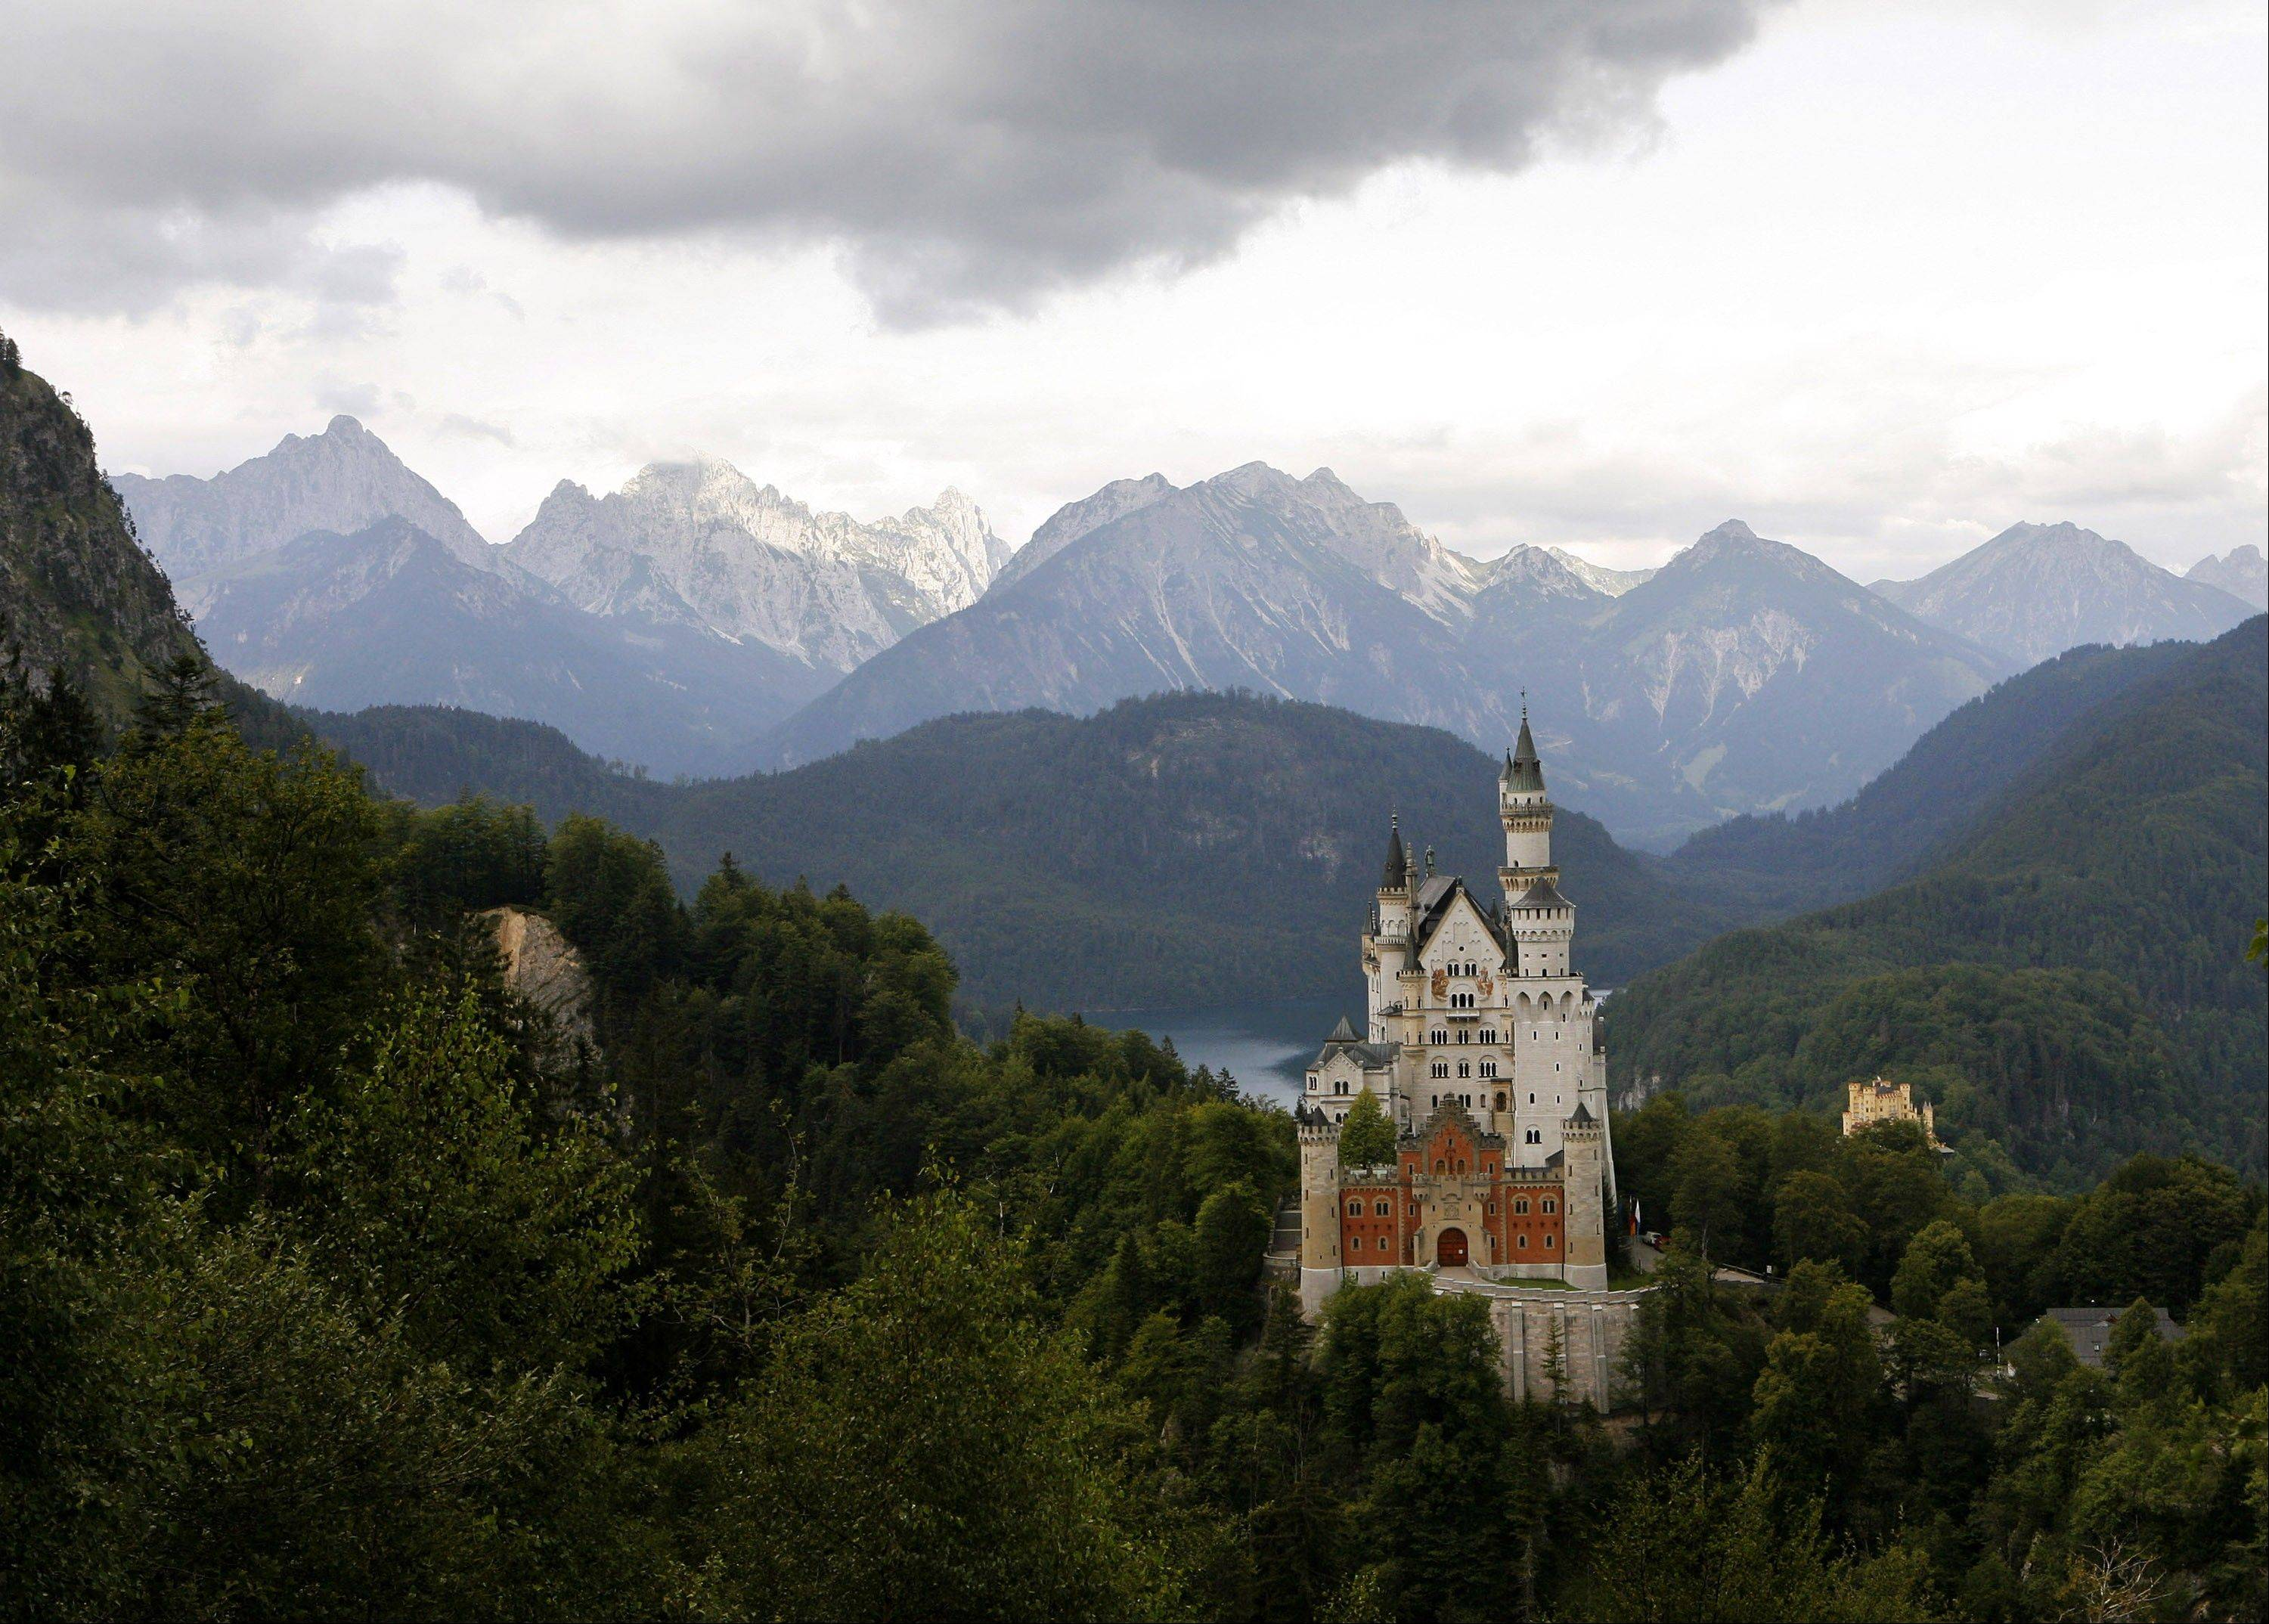 But during World War II, Neuschwanstein Castle near Schwangau, Germany, was the Nazi's hideaway for about 21,000 items stolen from French collectors and records of the looting.